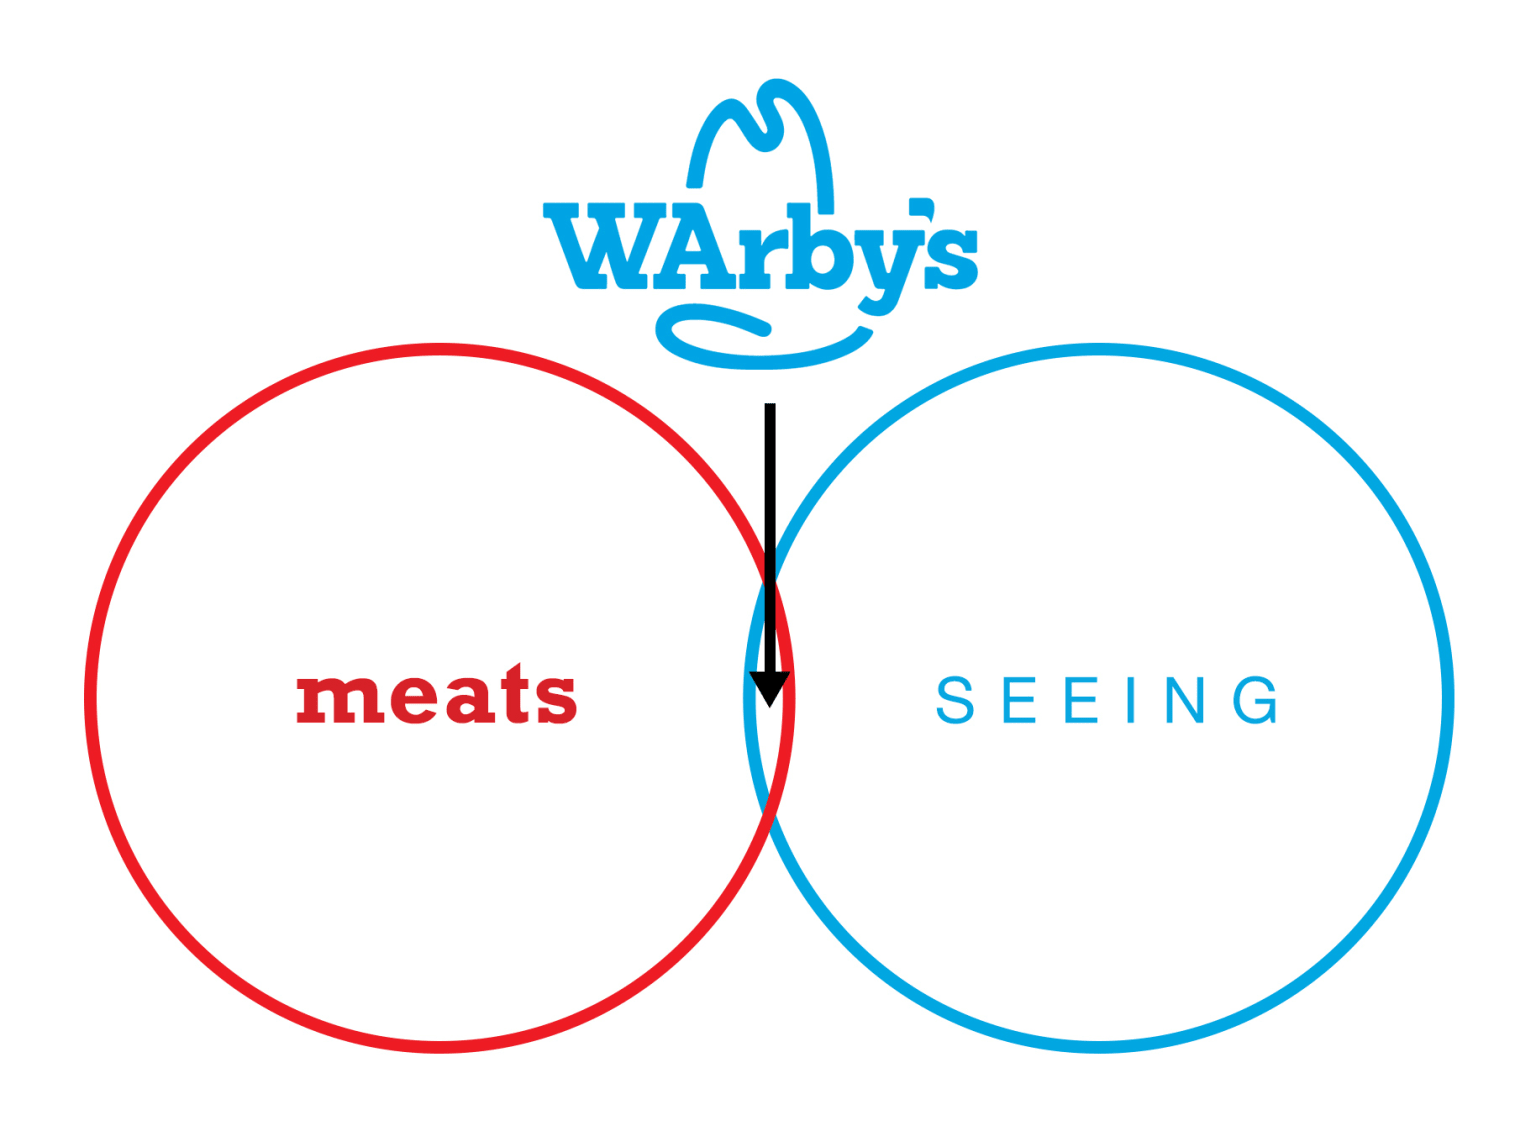 WArby's